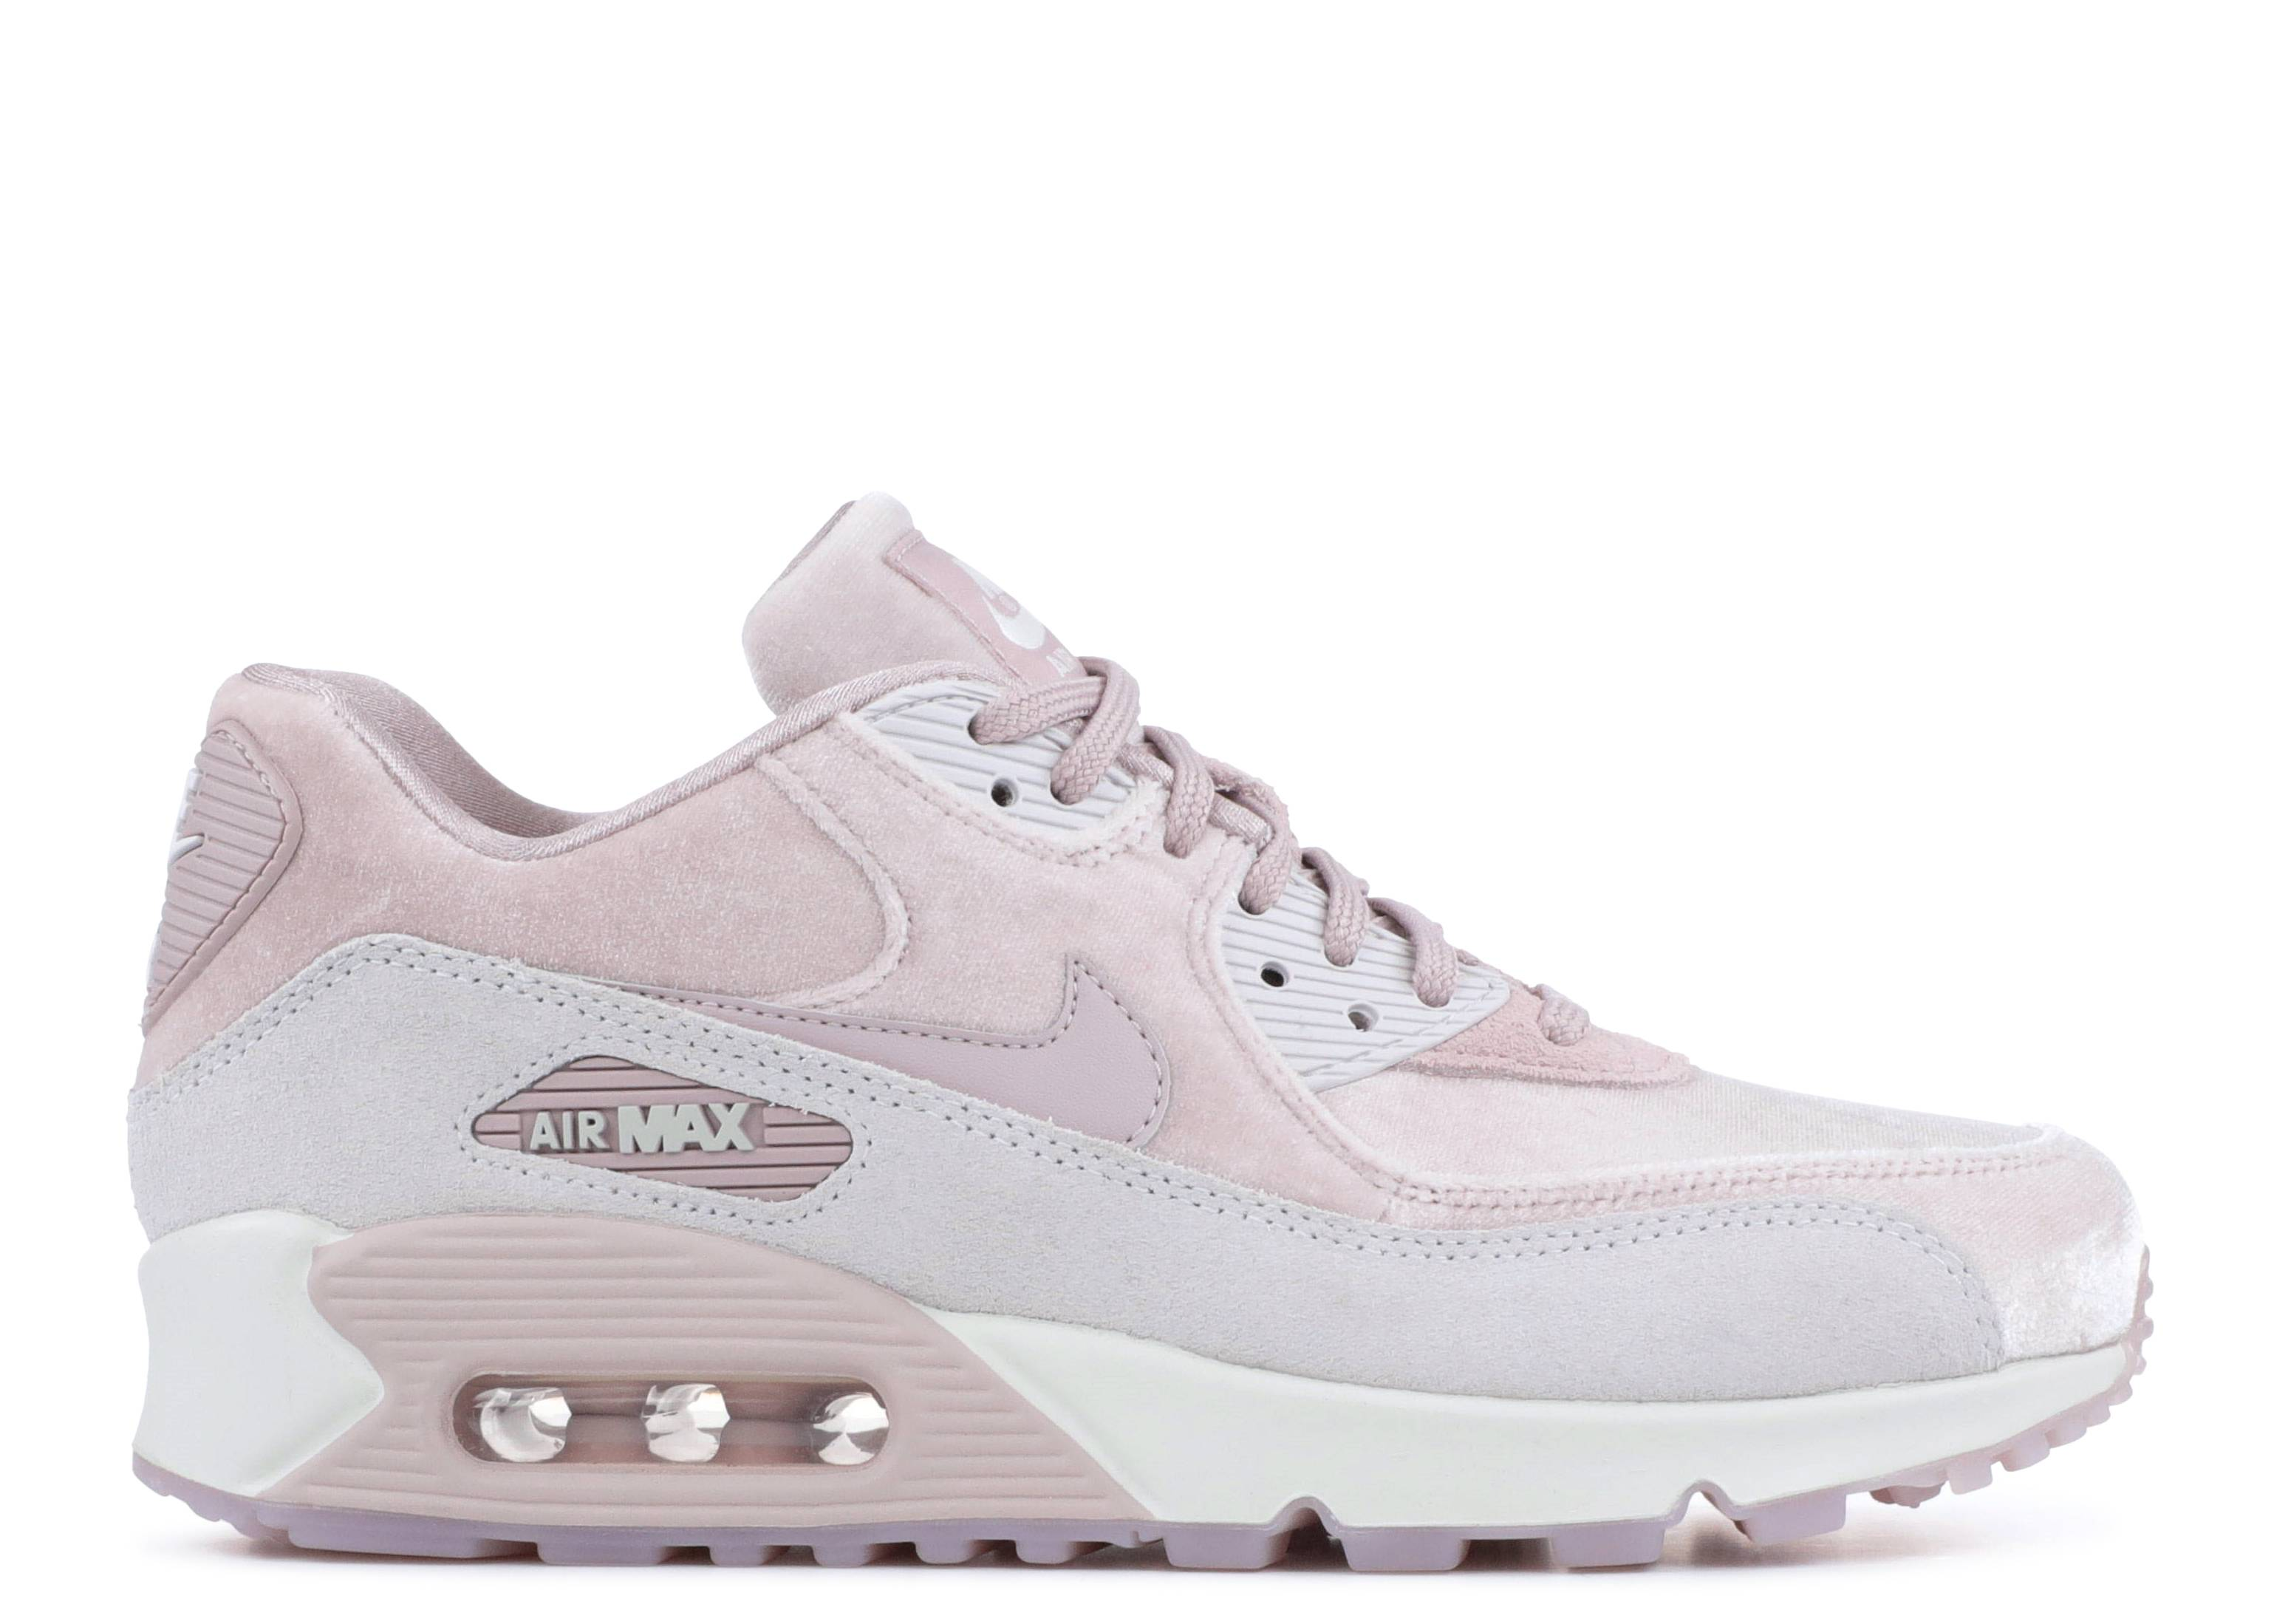 WOMEN'S NIKE AIR MAX 90 LX SHOES PARTICLE ROSE 898512 600